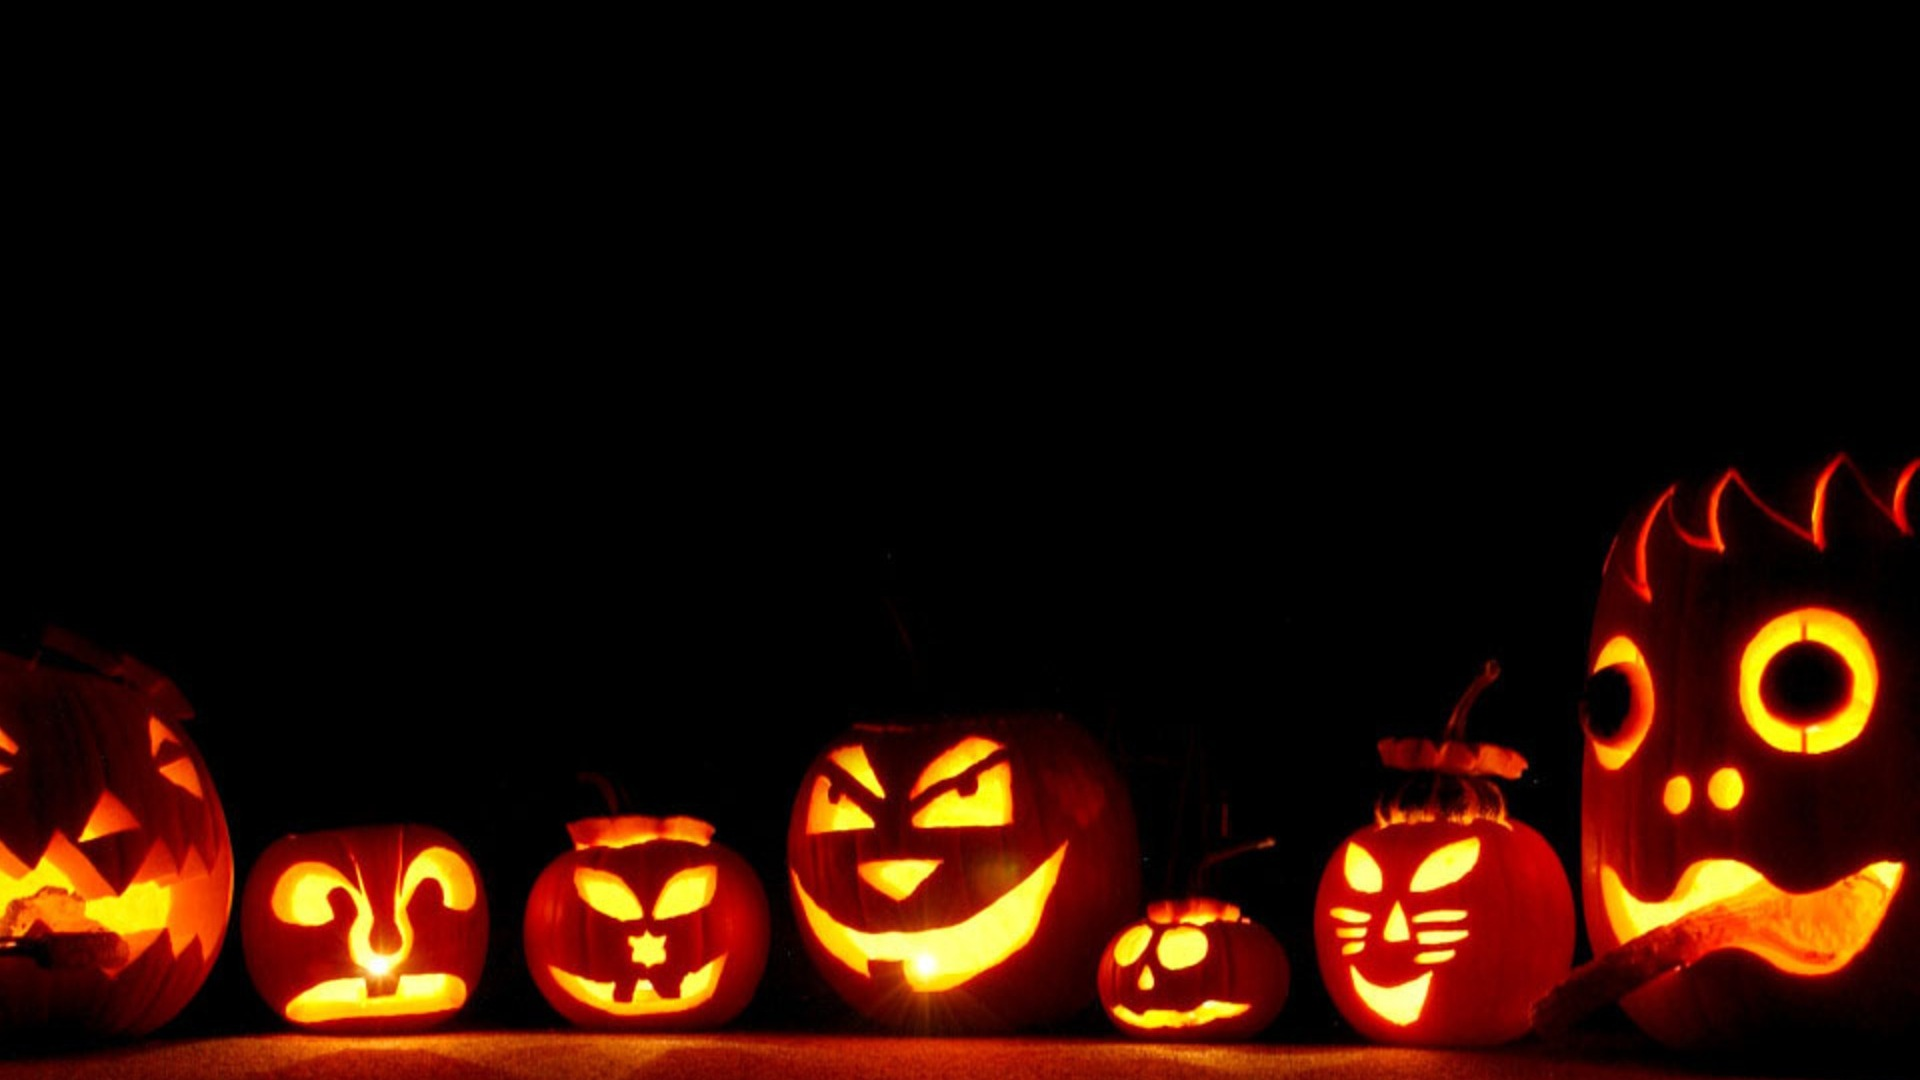 Wallpapers Collection Halloween Wallpapers 1920x1080